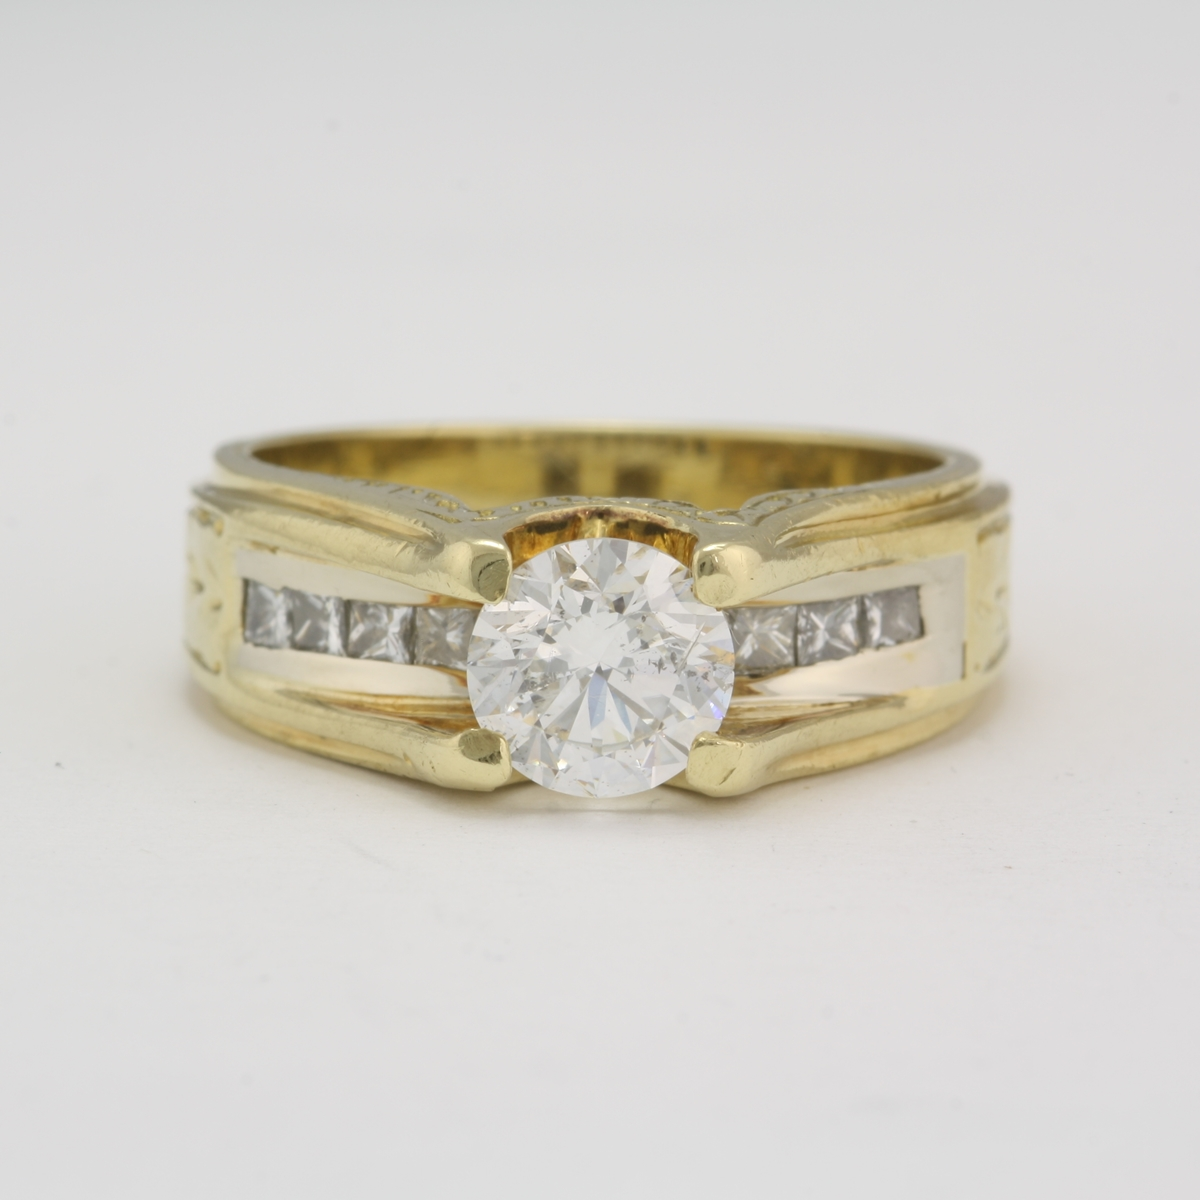 pre gold owned ring yellow may image jewellery wedding rings from william